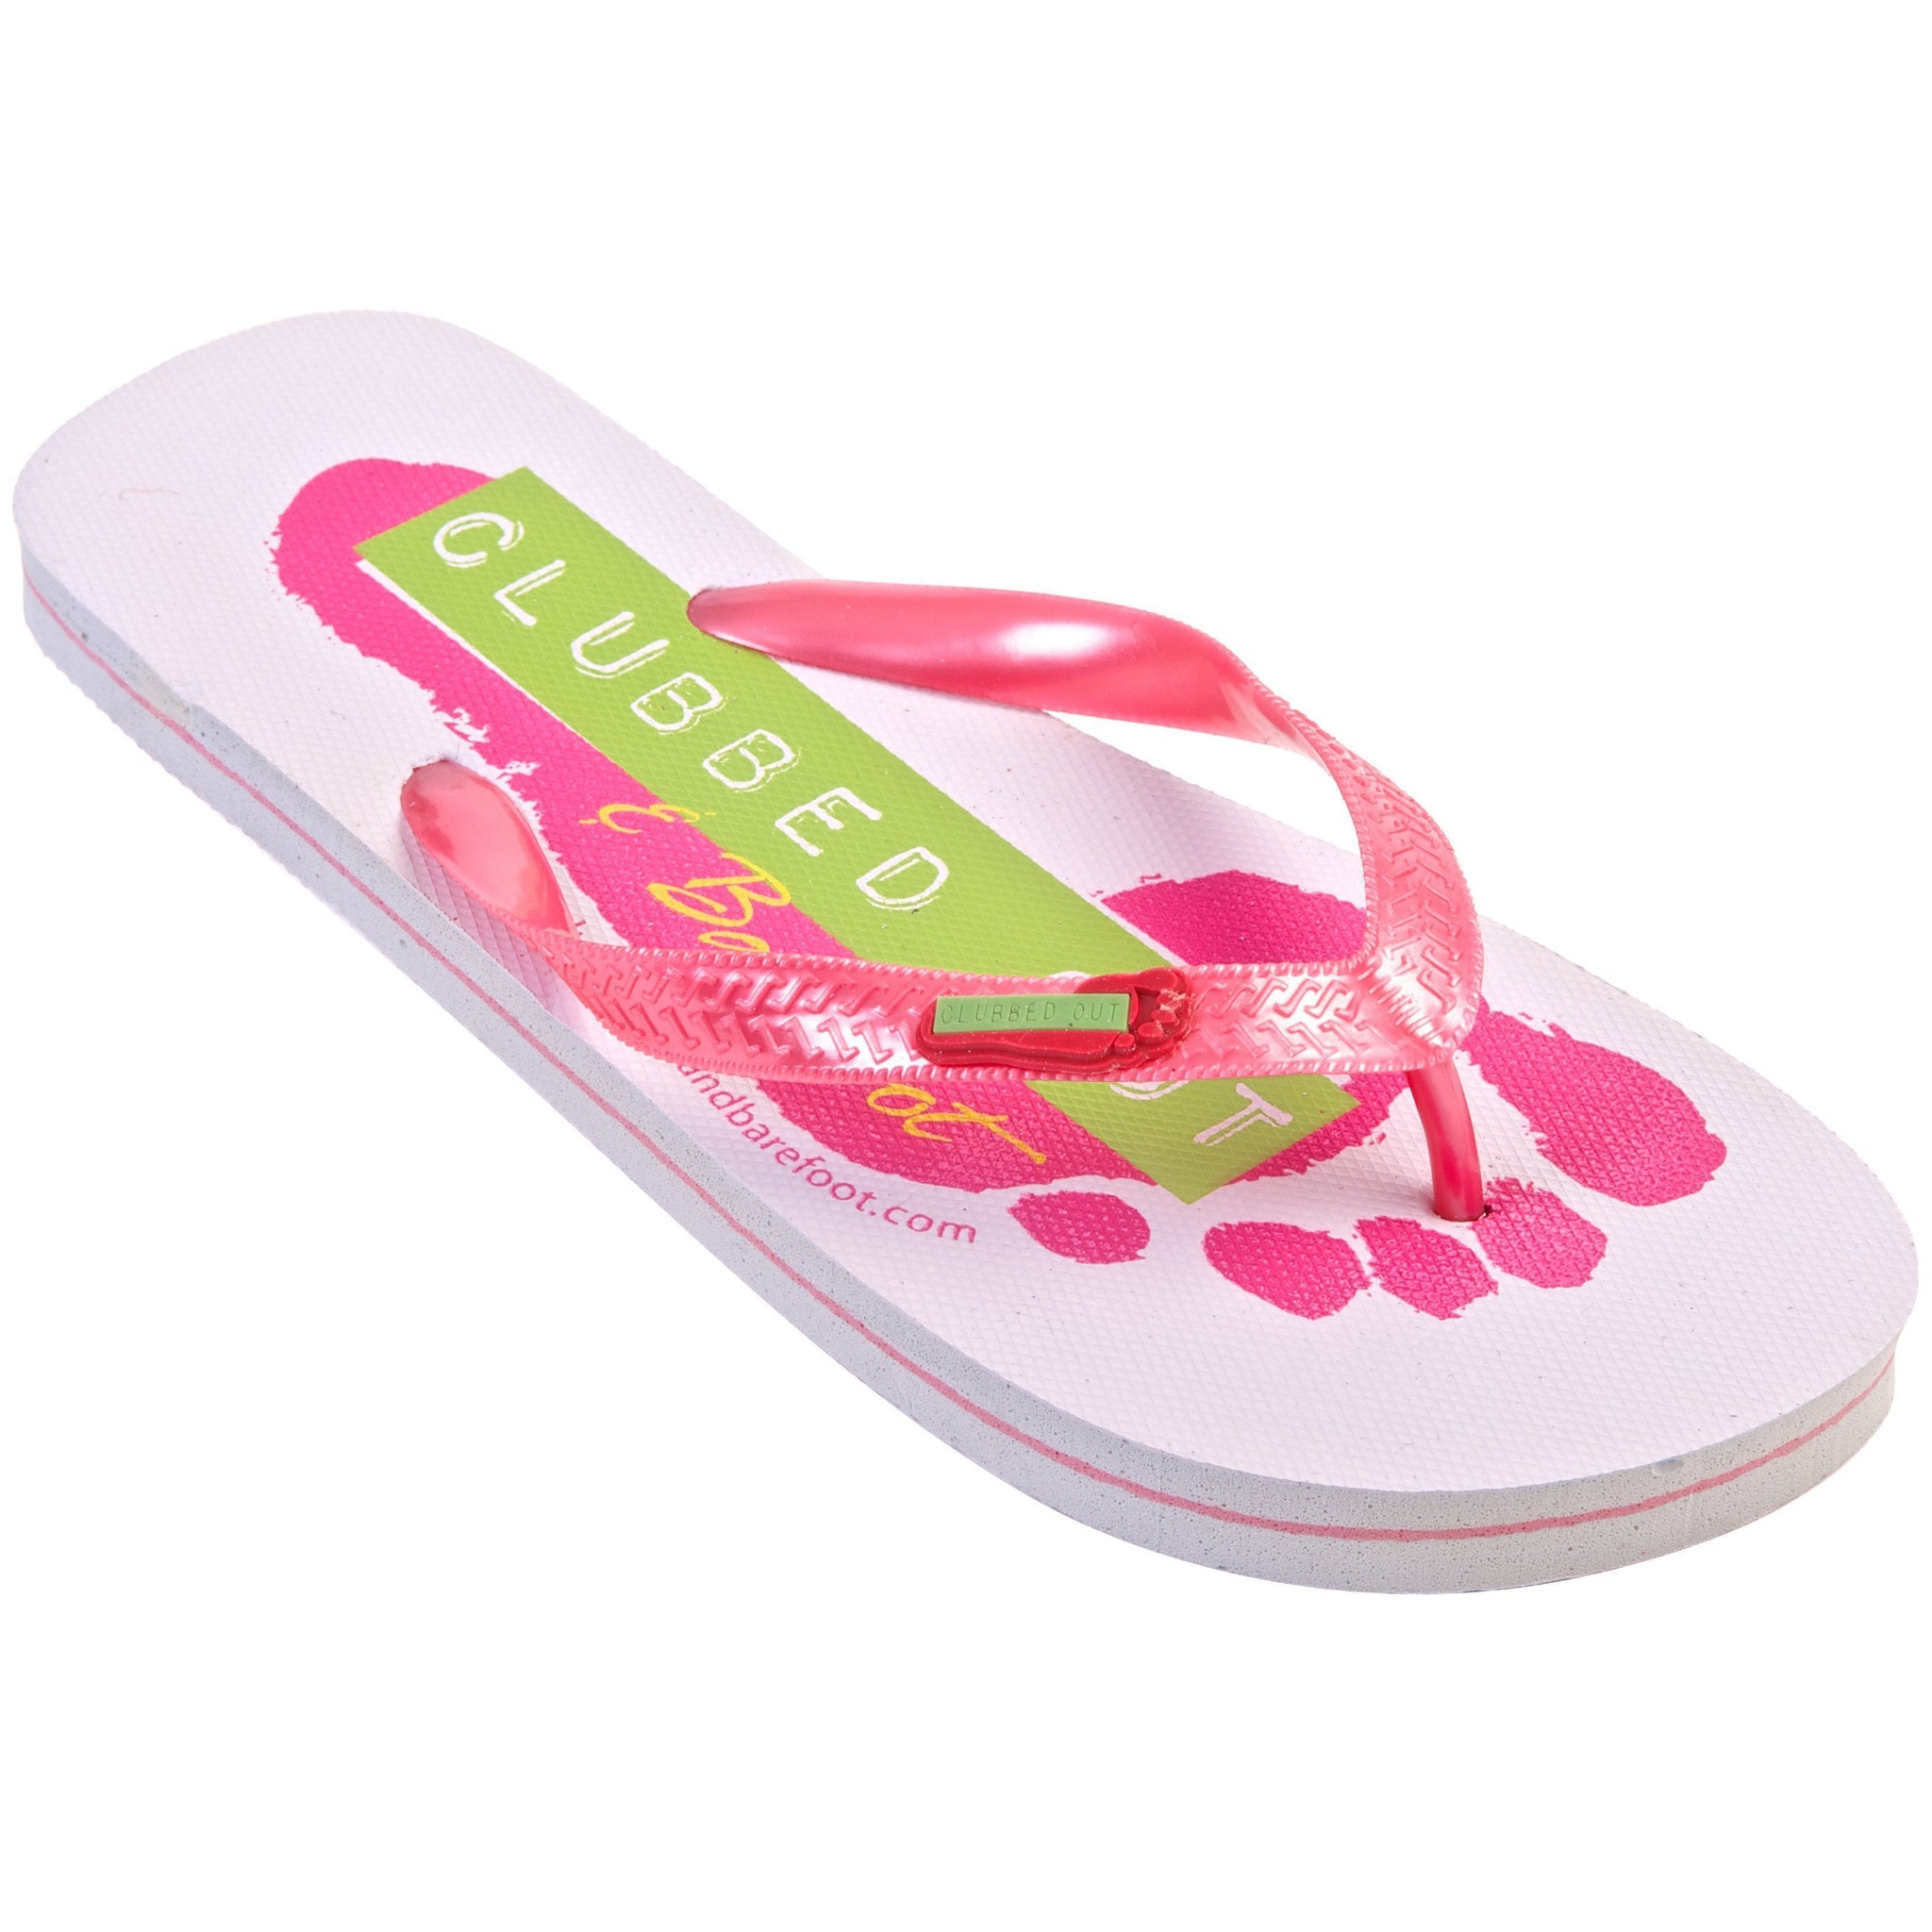 Zohula Clubbed Out und Barefoot Flip Flops